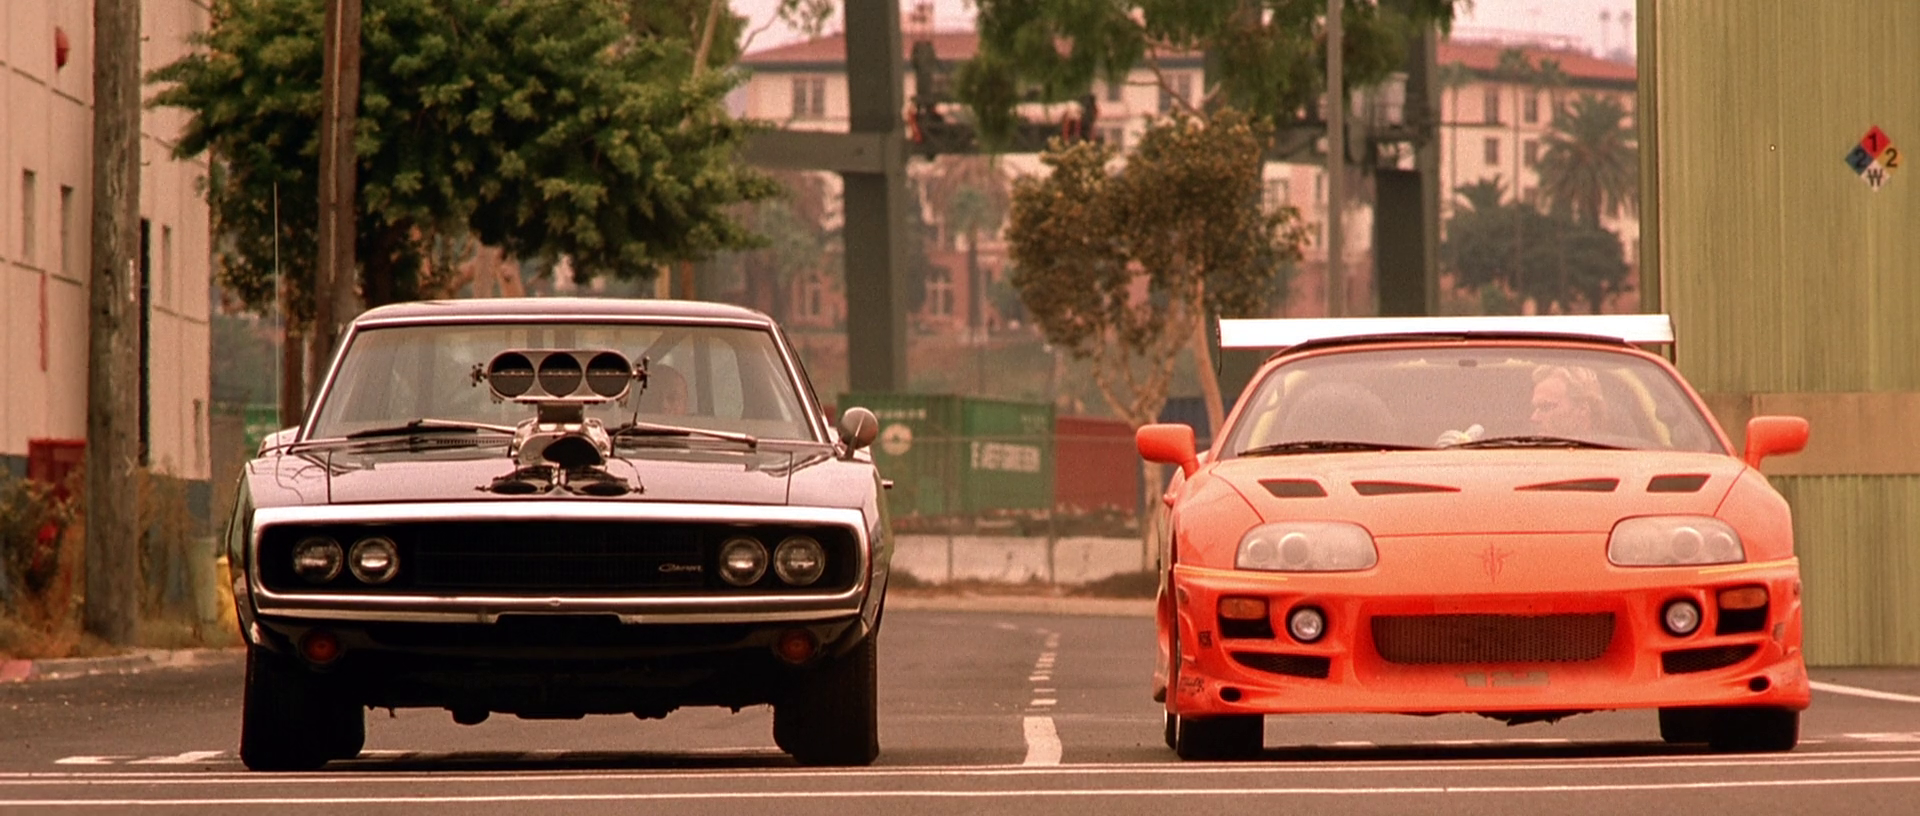 muscle vs jdm vs euro: a history of car rivalries in america